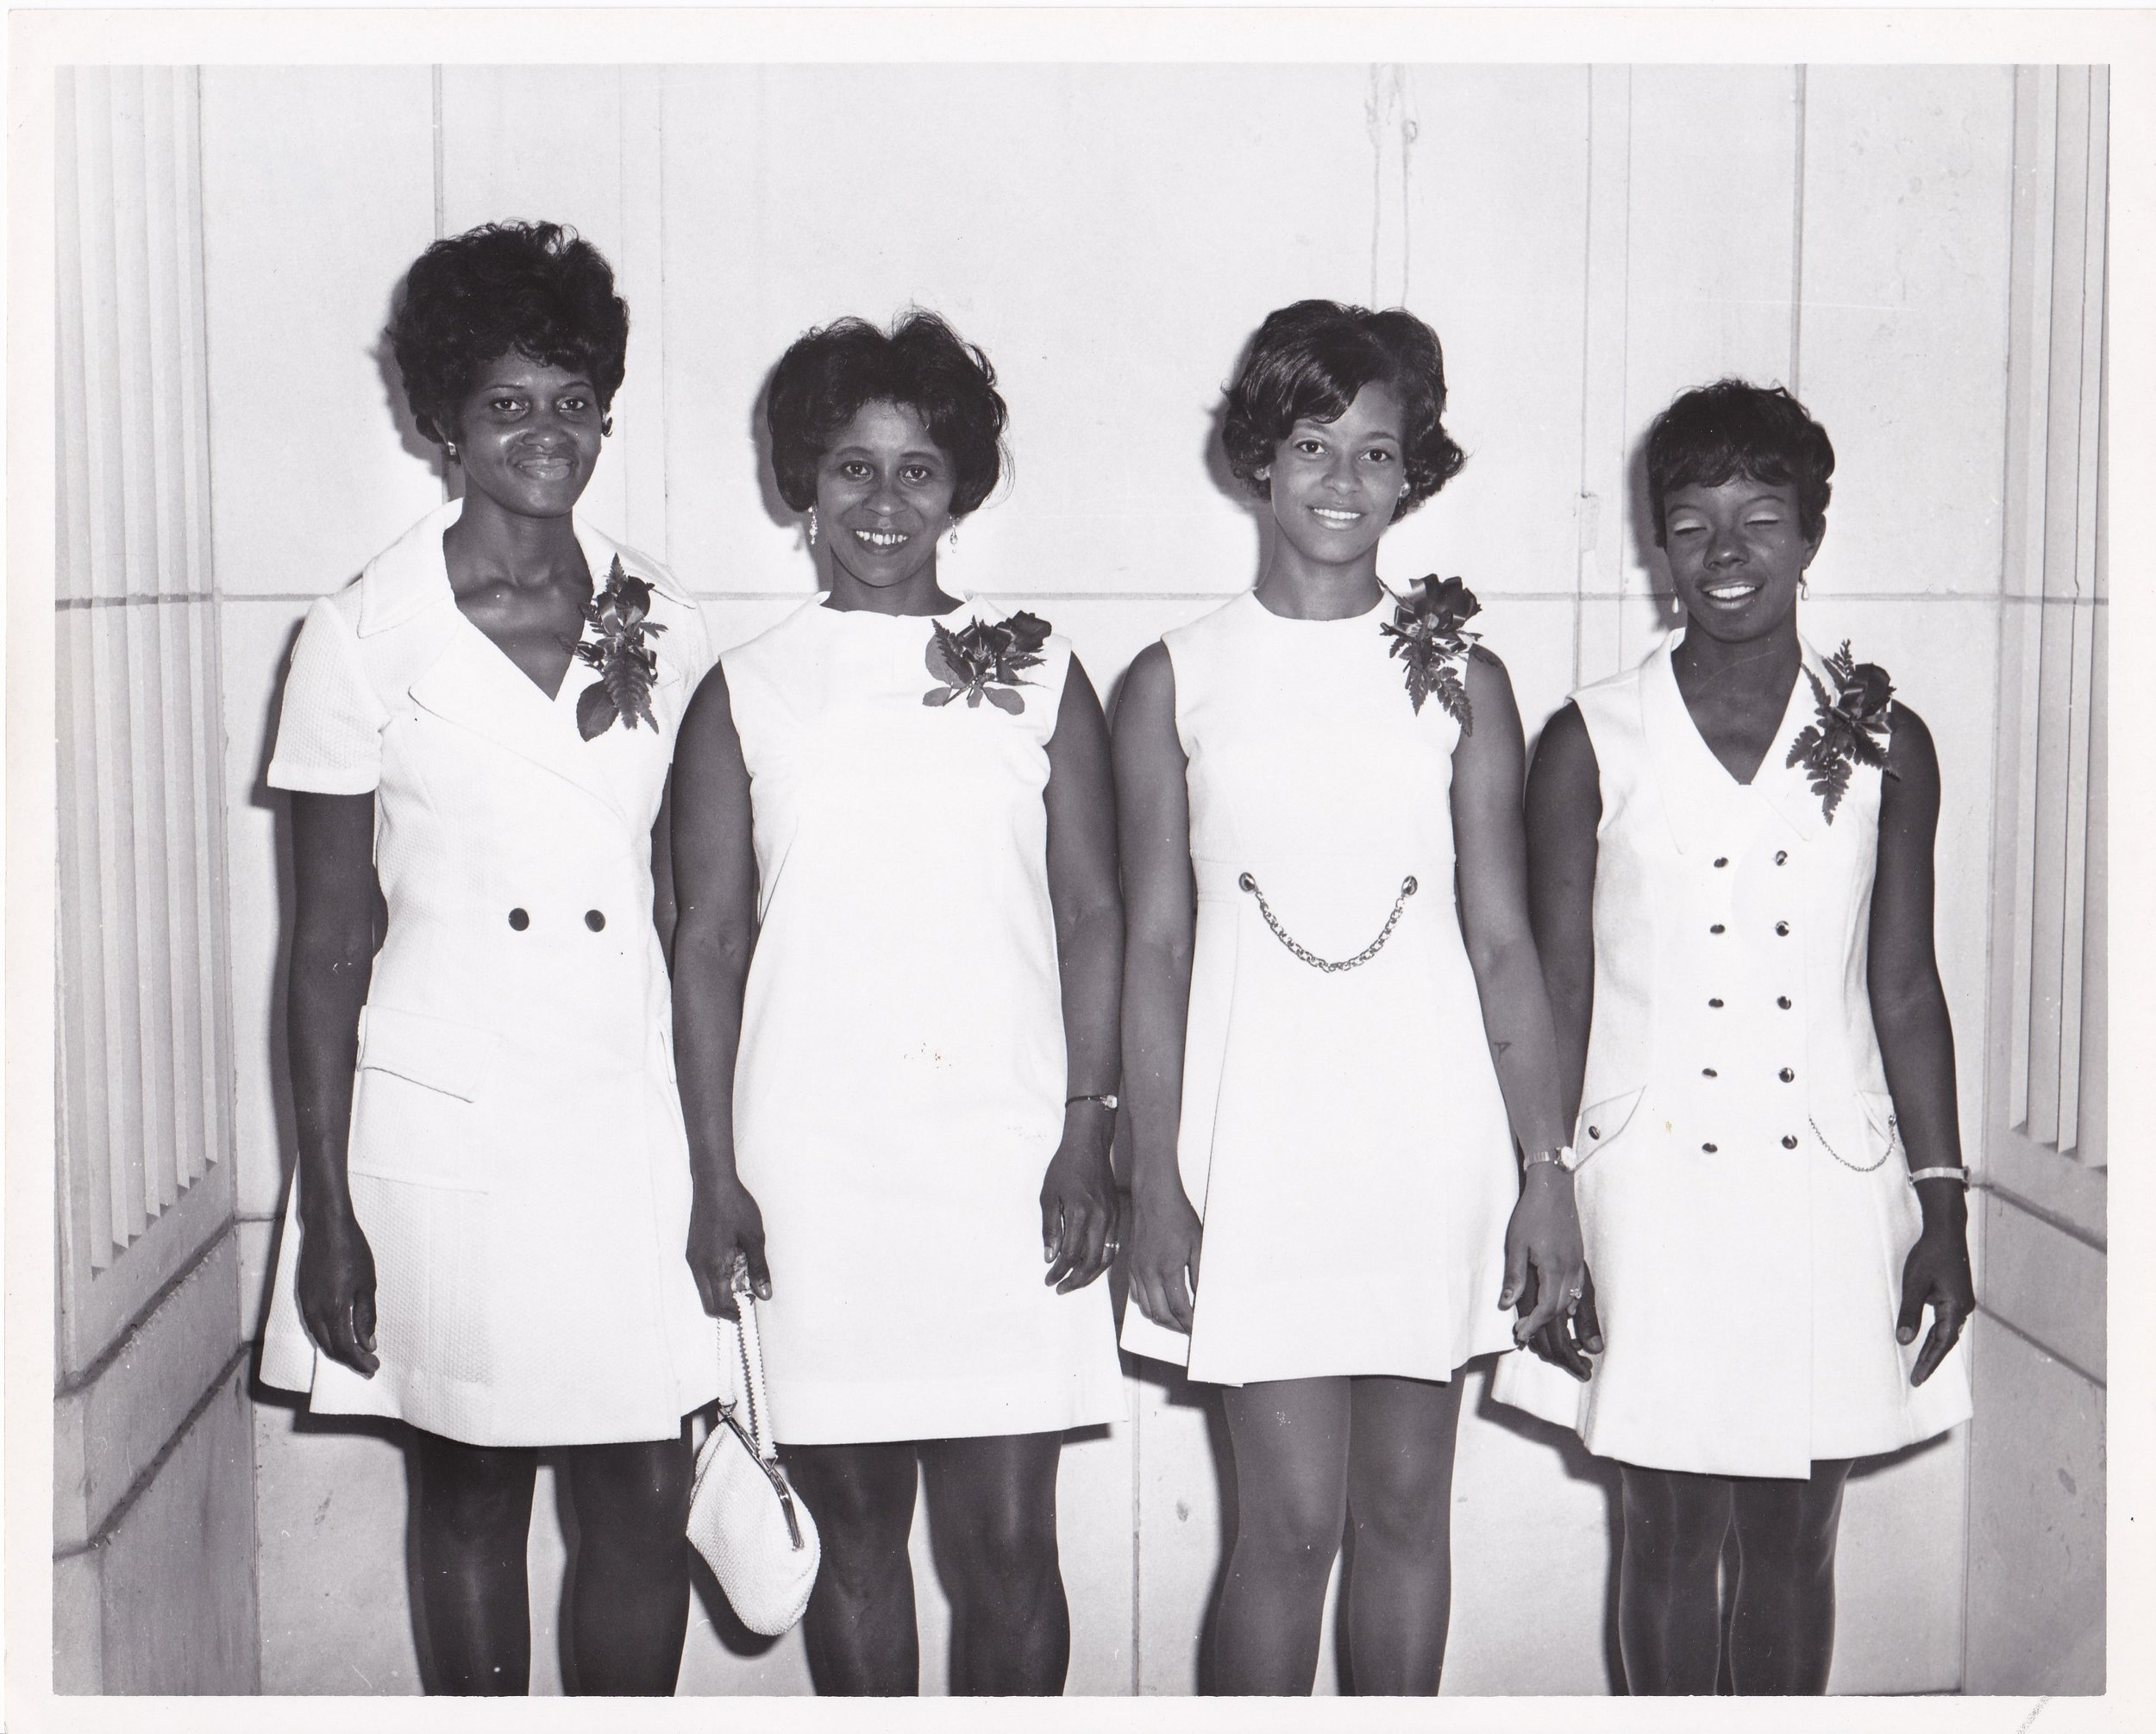 '70 Geraldine Smith, Shirley Jefferson, Joyce Bryant, and Janell Charles